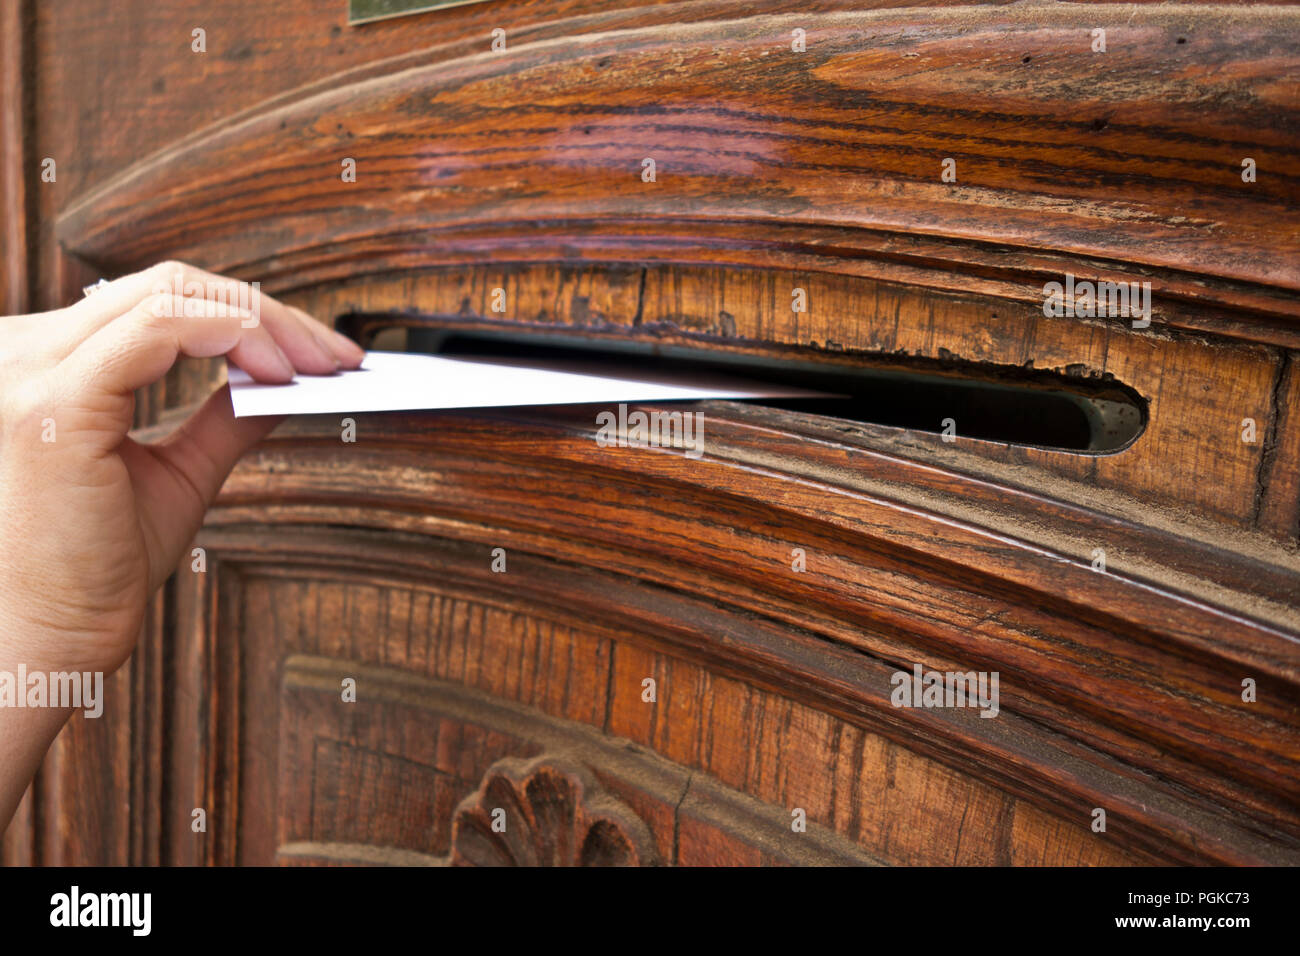 woman hand putting an envelope into a mail slot - Stock Image